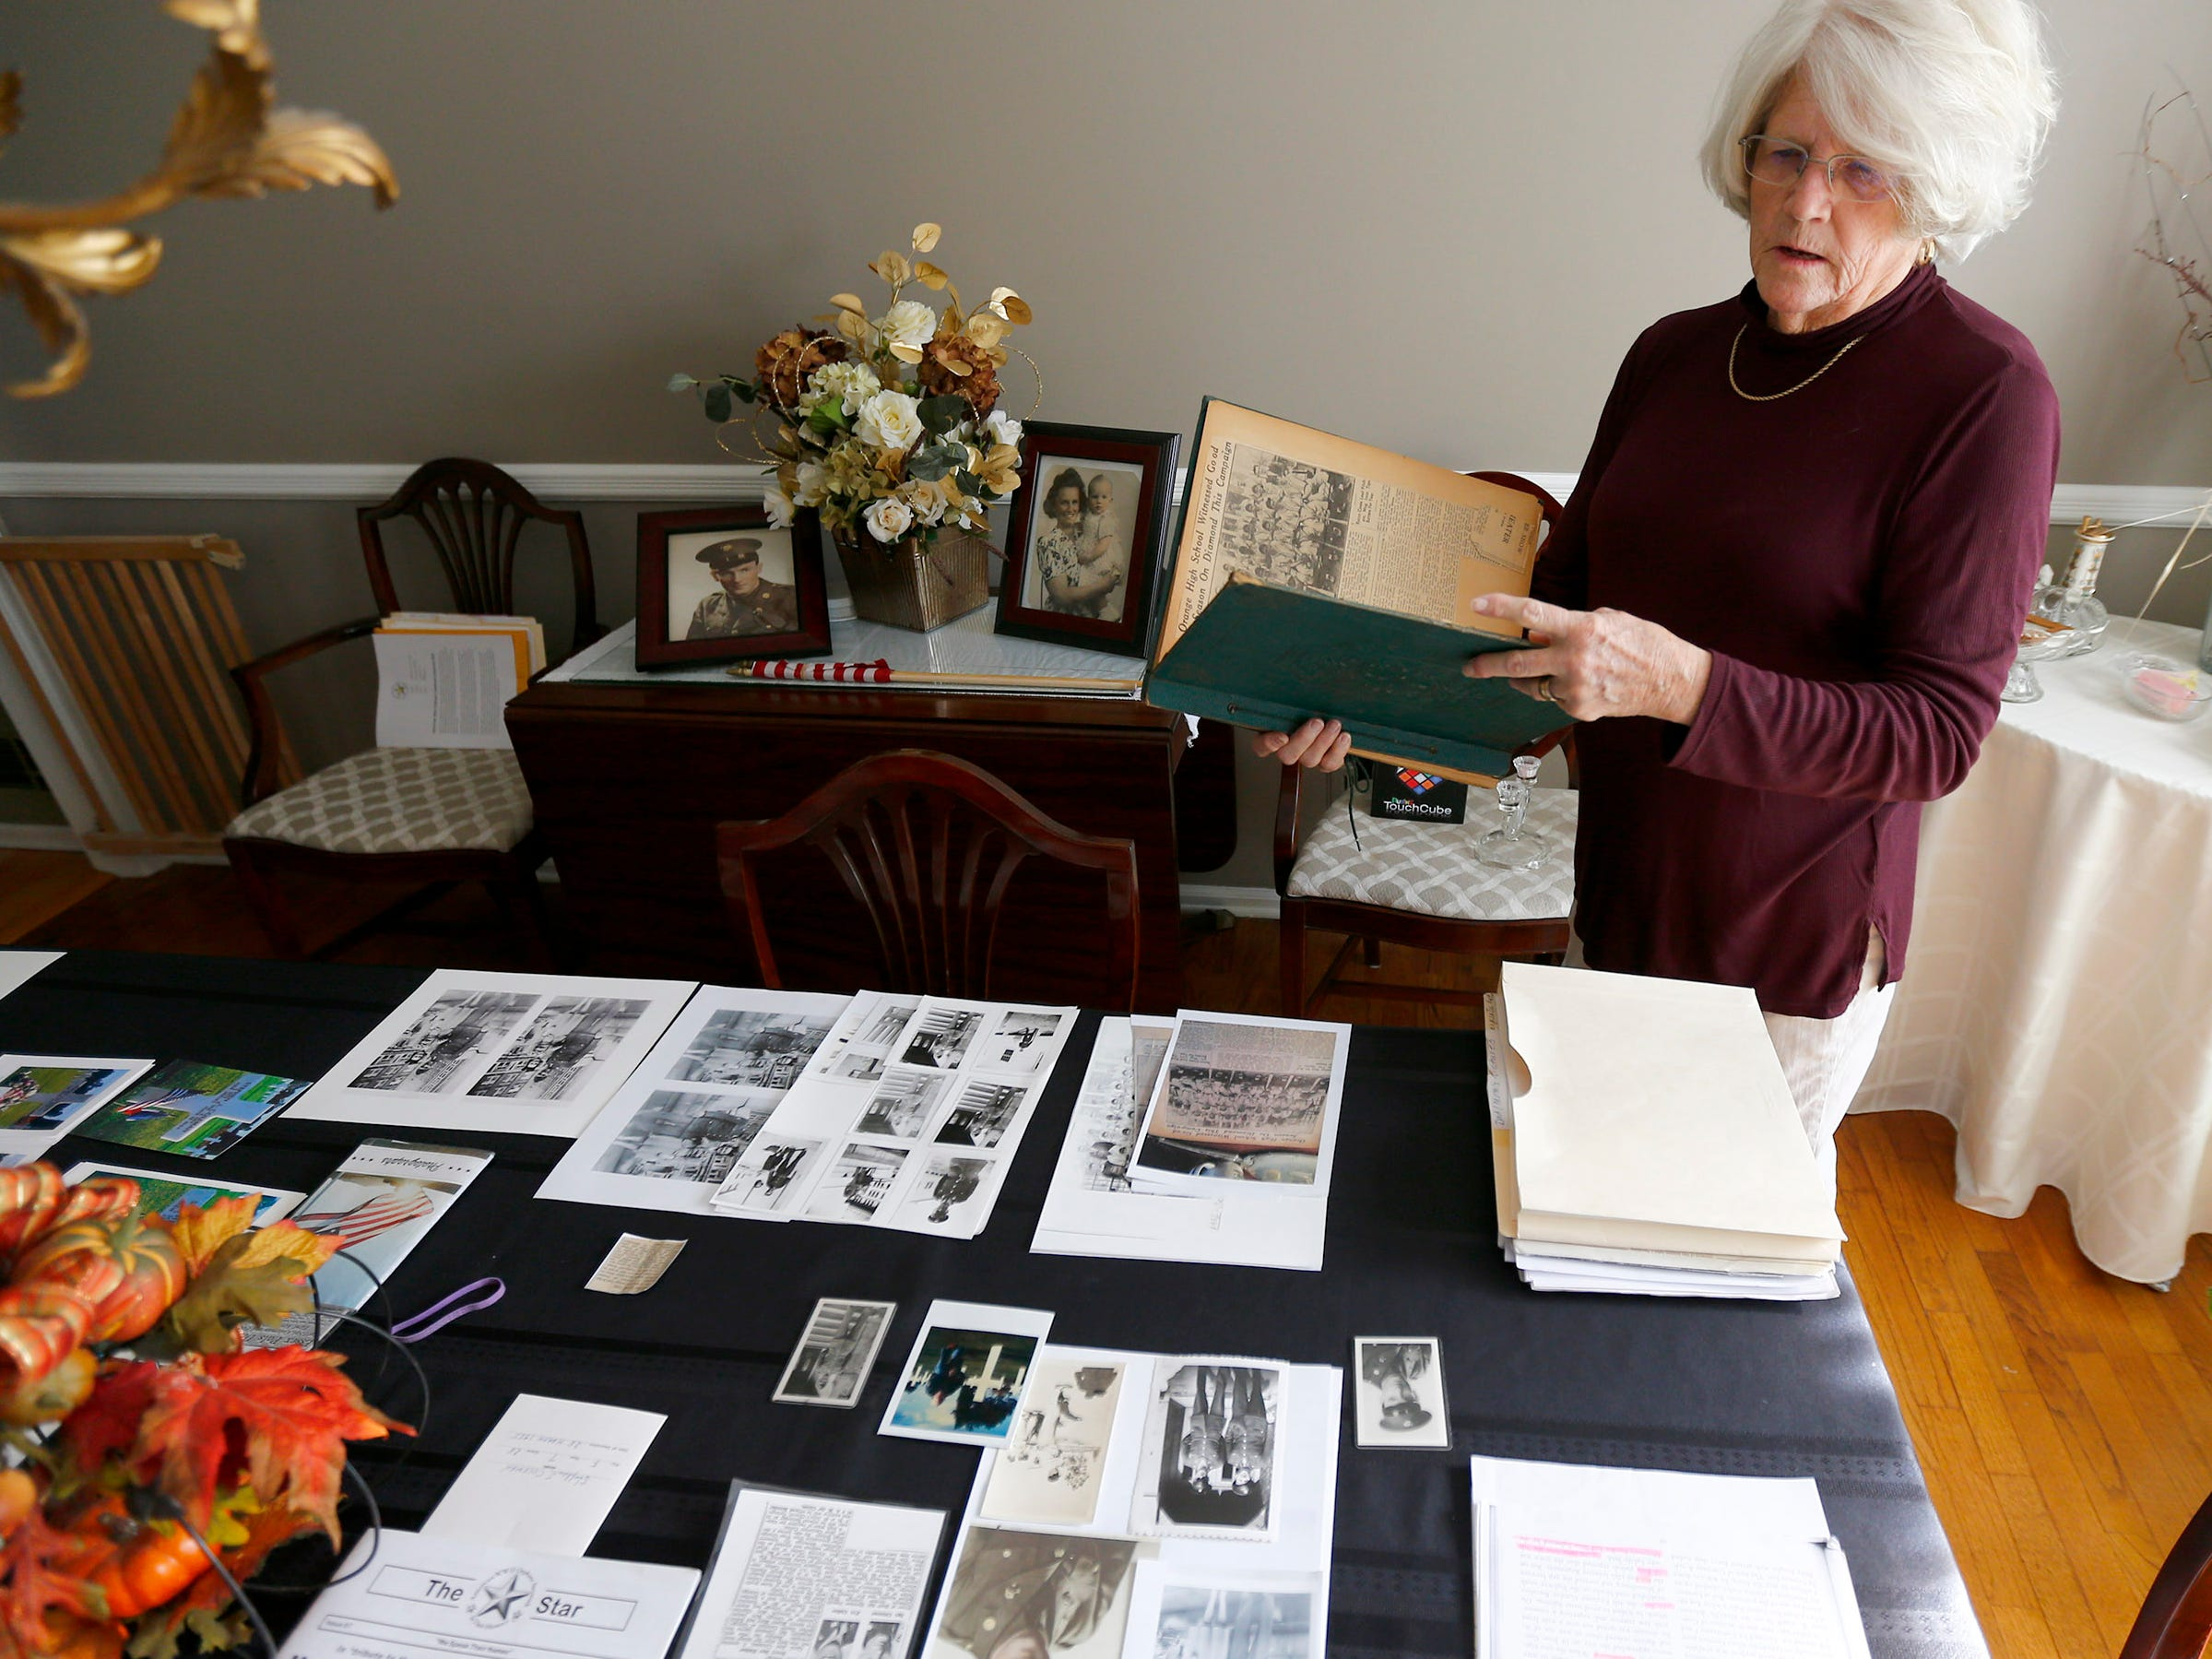 Carol Donahue looks over memorabilia of her father, Stephen J. Coleman, in her Colts Neck home Thursday, November 8, 2018.  He was killed in the D-Day invasion.